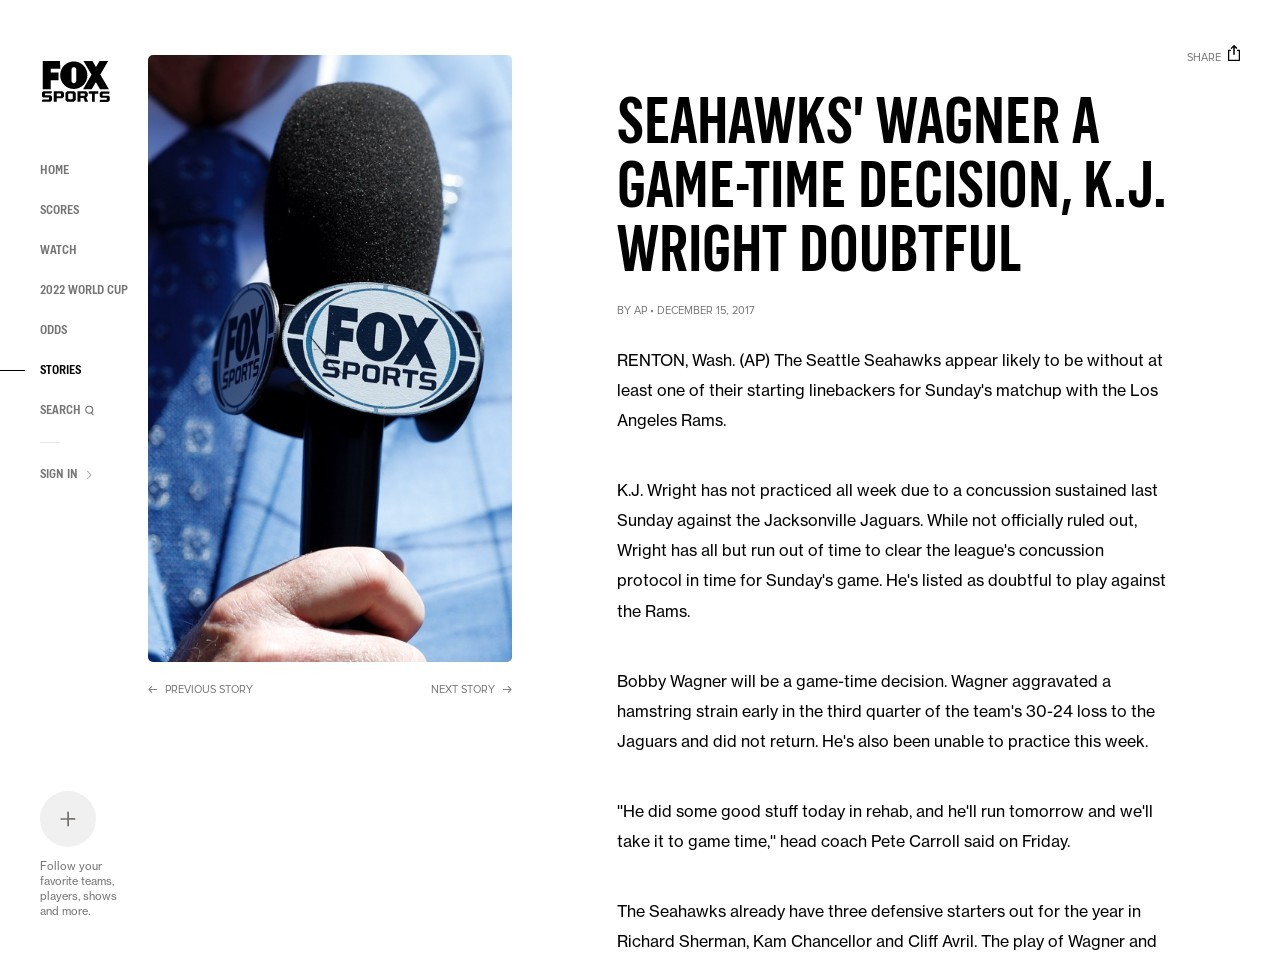 Seahawks' Wagner a game-time decision, K.J. Wright doubtful